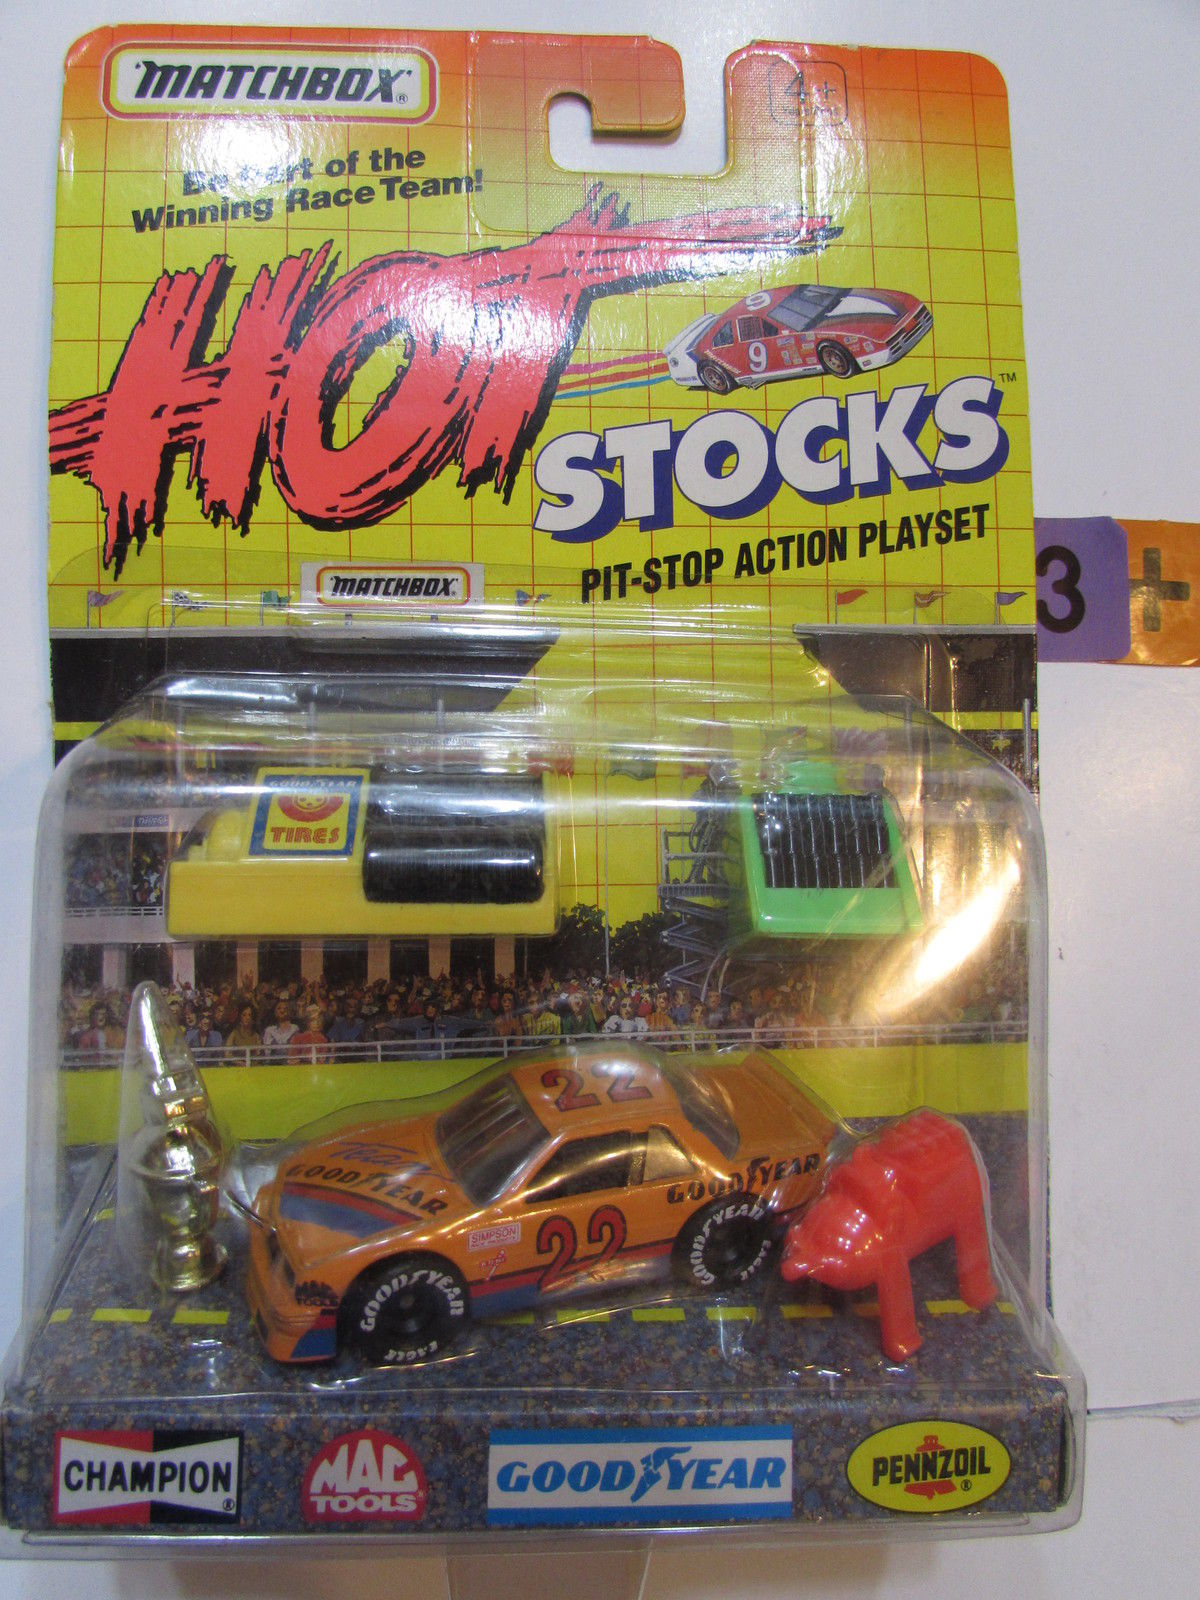 MATCHBOX 1991 HOT STOCKS PIT - STOP ACTION PLAYLIST TEAM GOOD YEAR #22